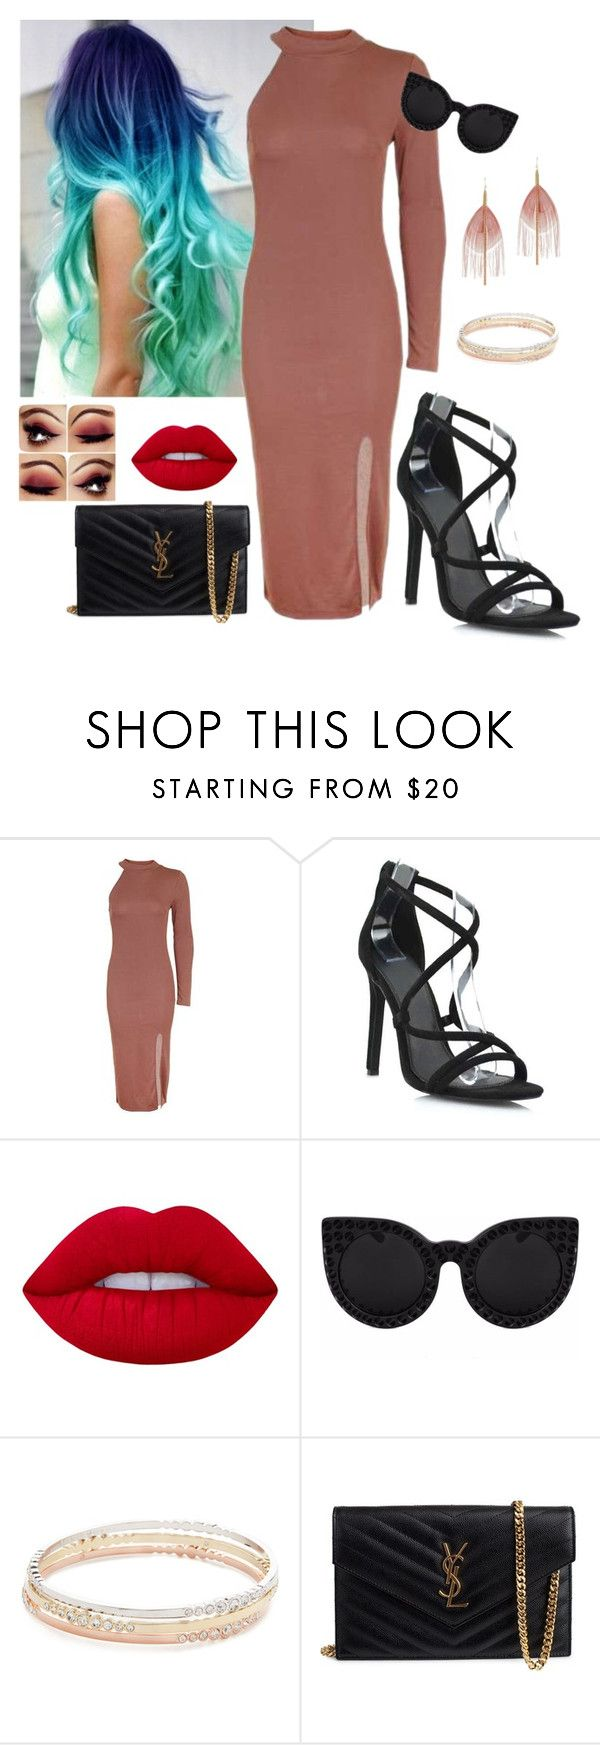 """Sem título #1129"" by anaritaferreira on Polyvore featuring moda, Topshop, Lime Crime, Kate Spade, Yves Saint Laurent e Serefina"